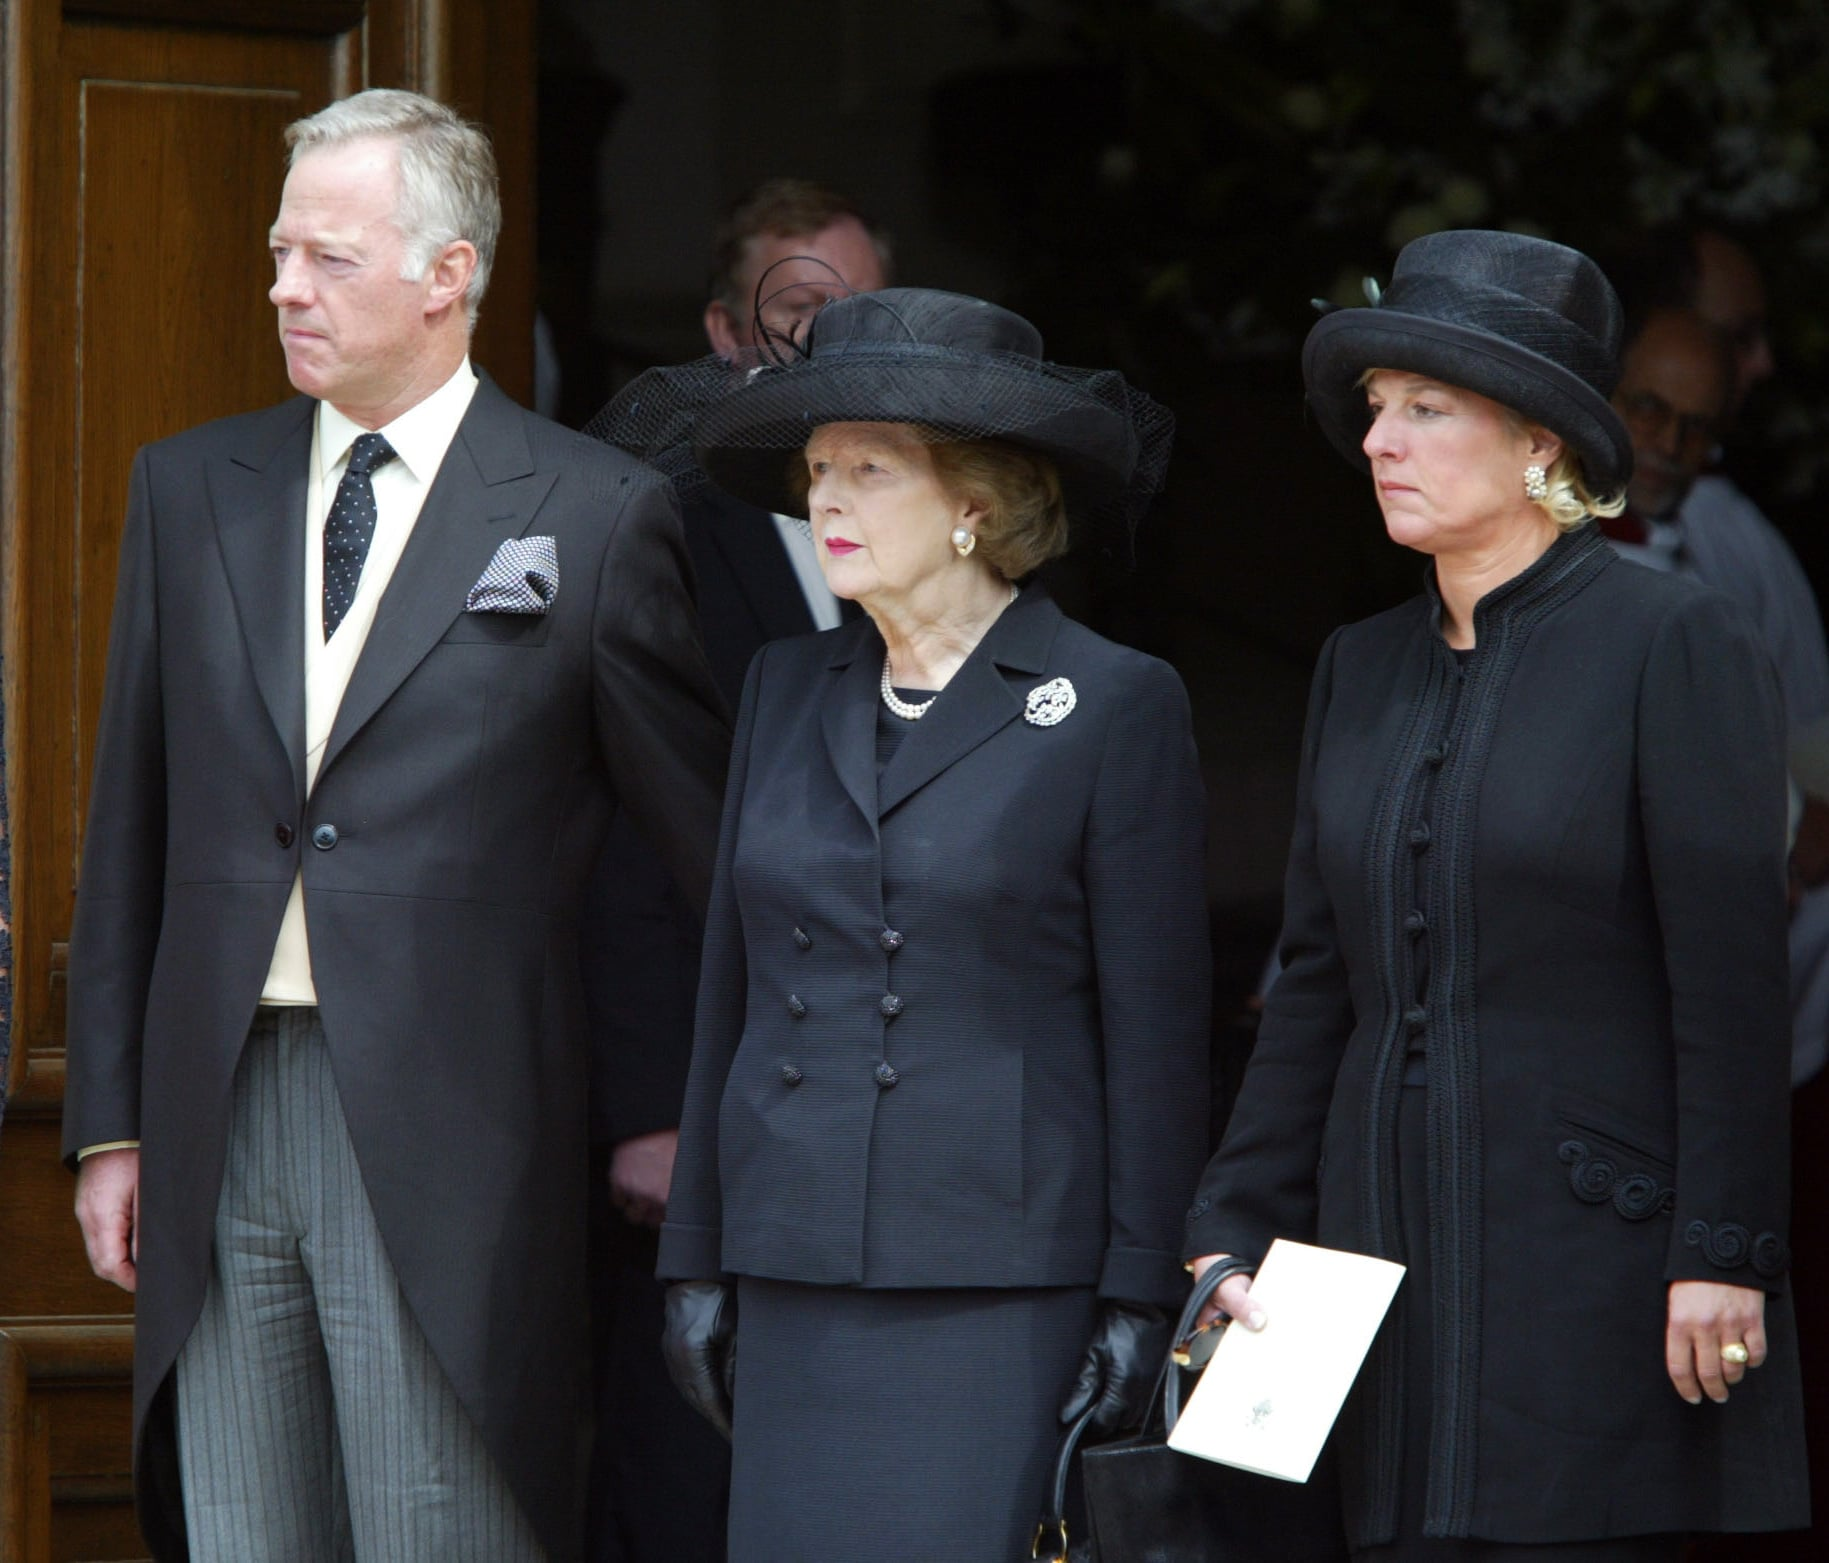 Margaret, Mark & Carol Thatcher Attend The Funeral Of Denis Thatcher At The Royal Hospital In Chelsea. (Photo by Justin Goff\UK Press via Getty Images)